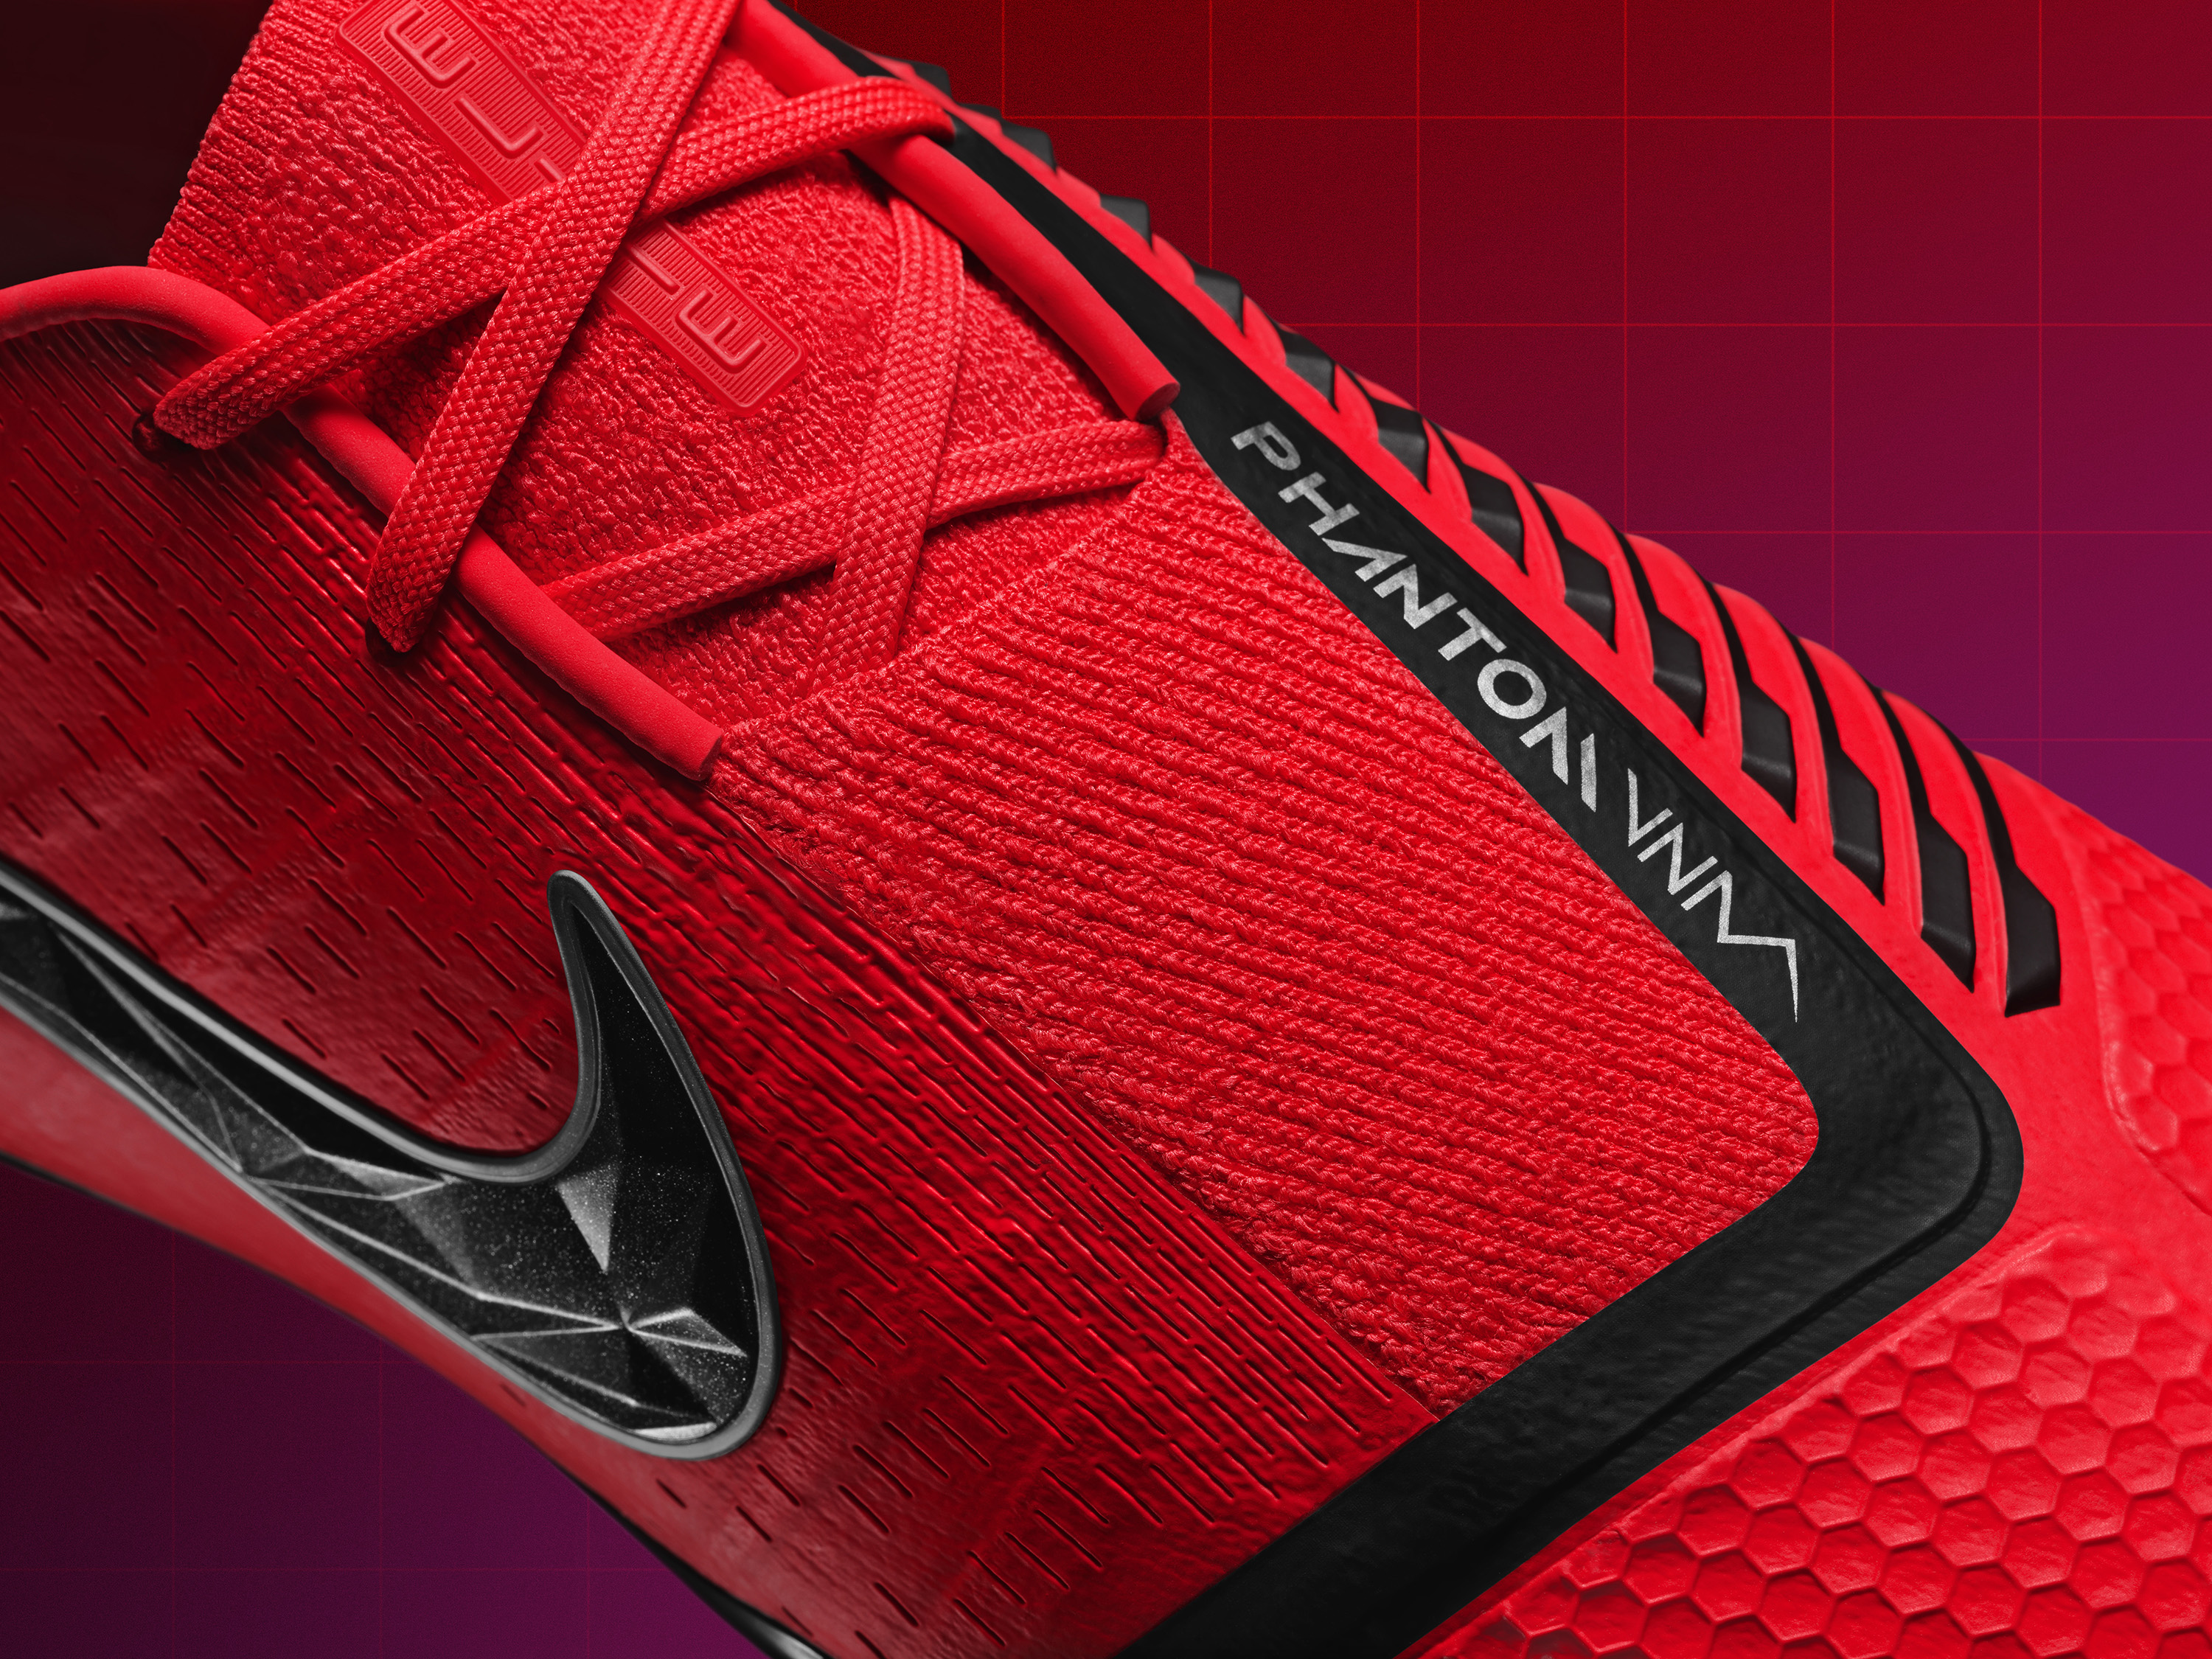 b786f9b92 FLYKNIT UPPER  Full Flyknit upper covered with a skin to keep it  weatherized and durable. Having a full Flyknit knit upper allows the VNM to  mold to the ...